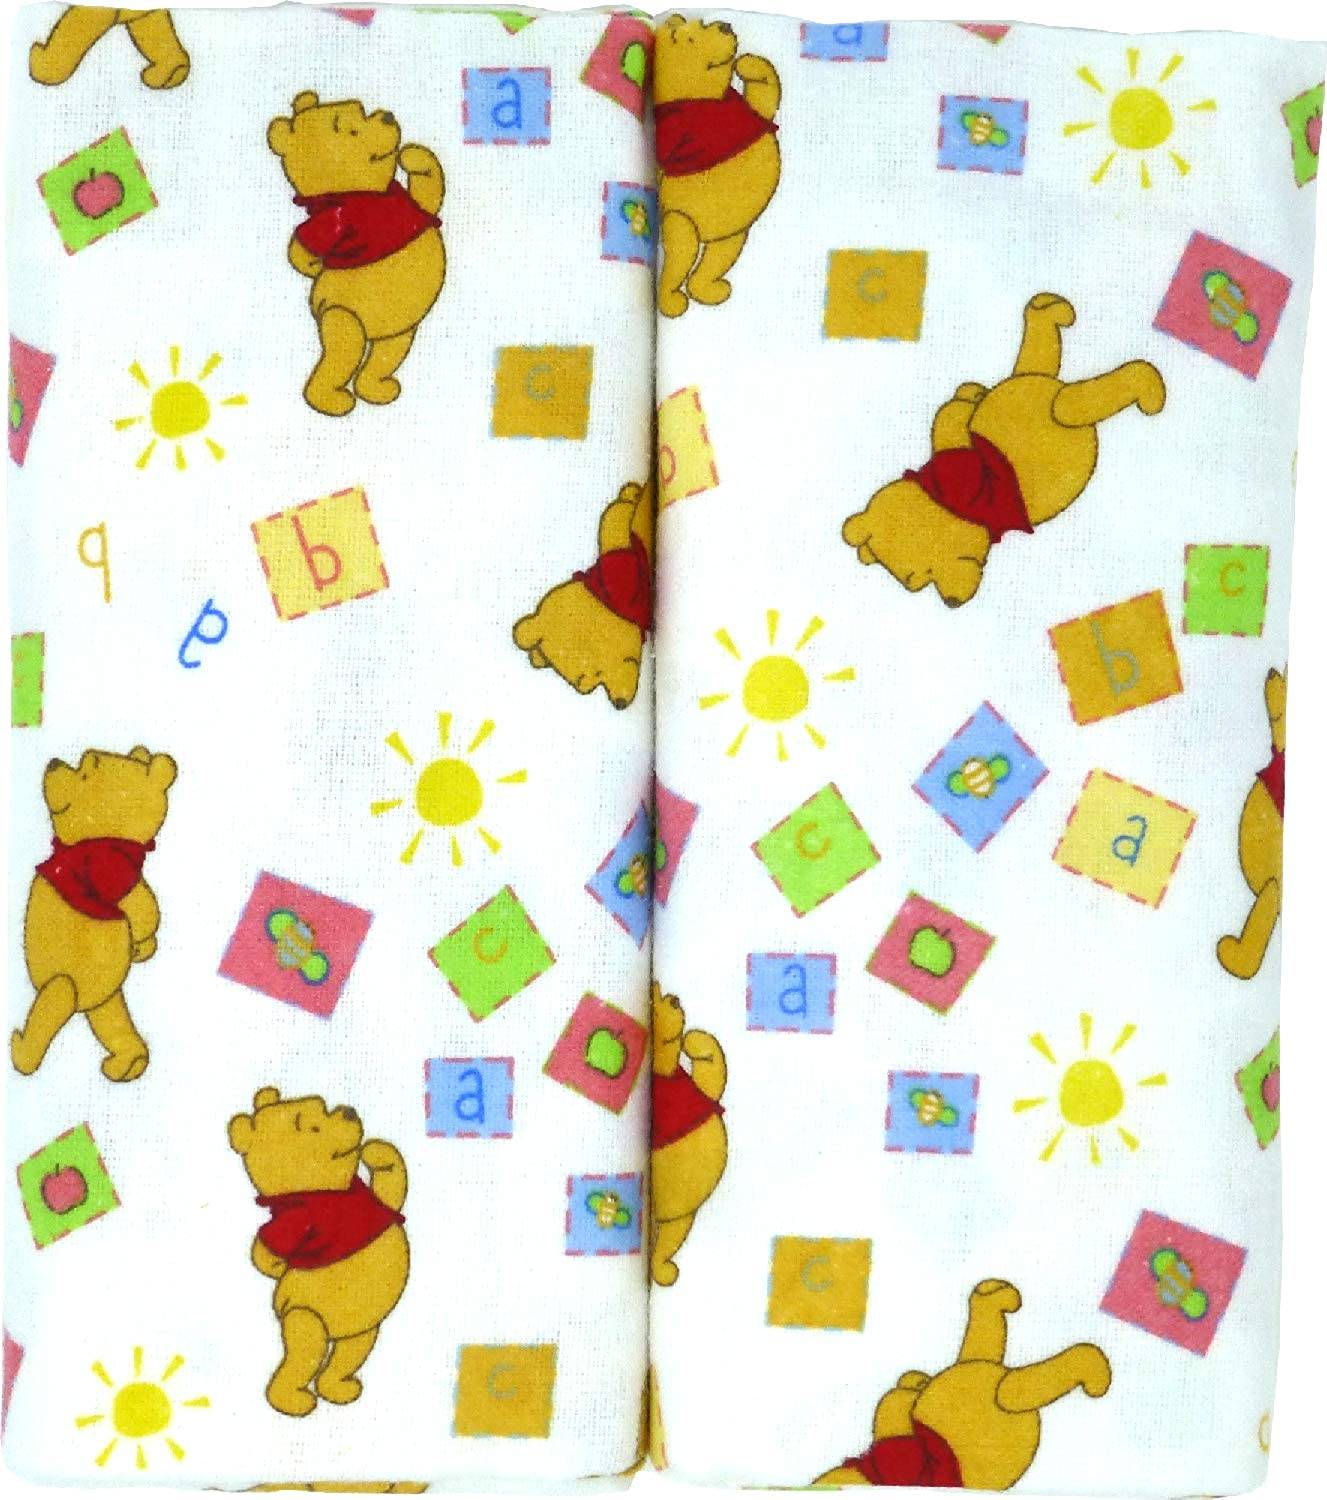 "Disney Winnie The Pooh Receiving Blankets. Two Pack of Varied Prints and Styles. Boy 30"" x 30"" …"